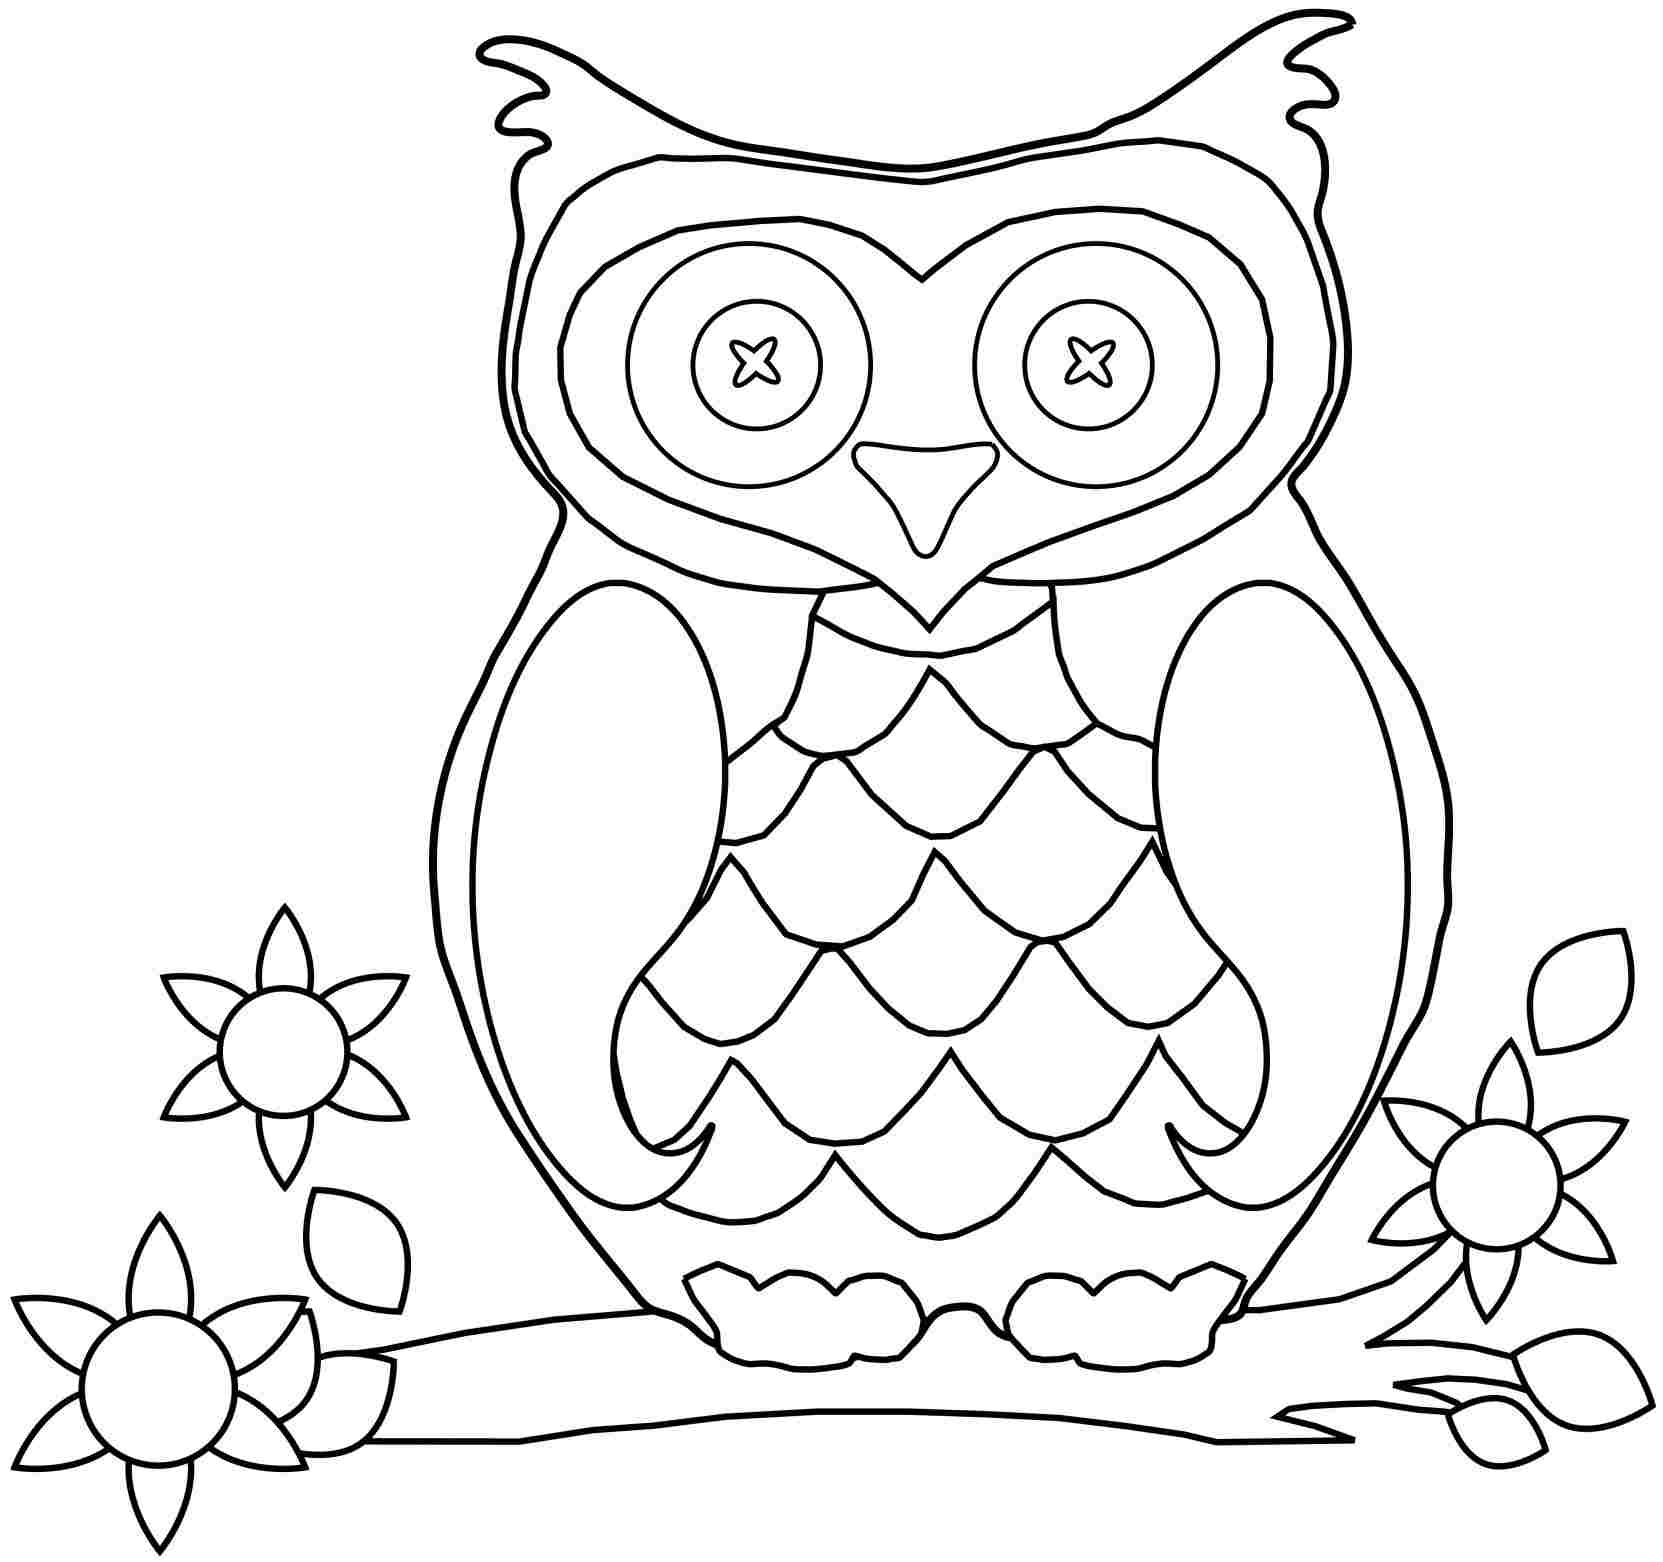 printable owl owl coloring pages for adults free detailed owl coloring printable owl 1 1